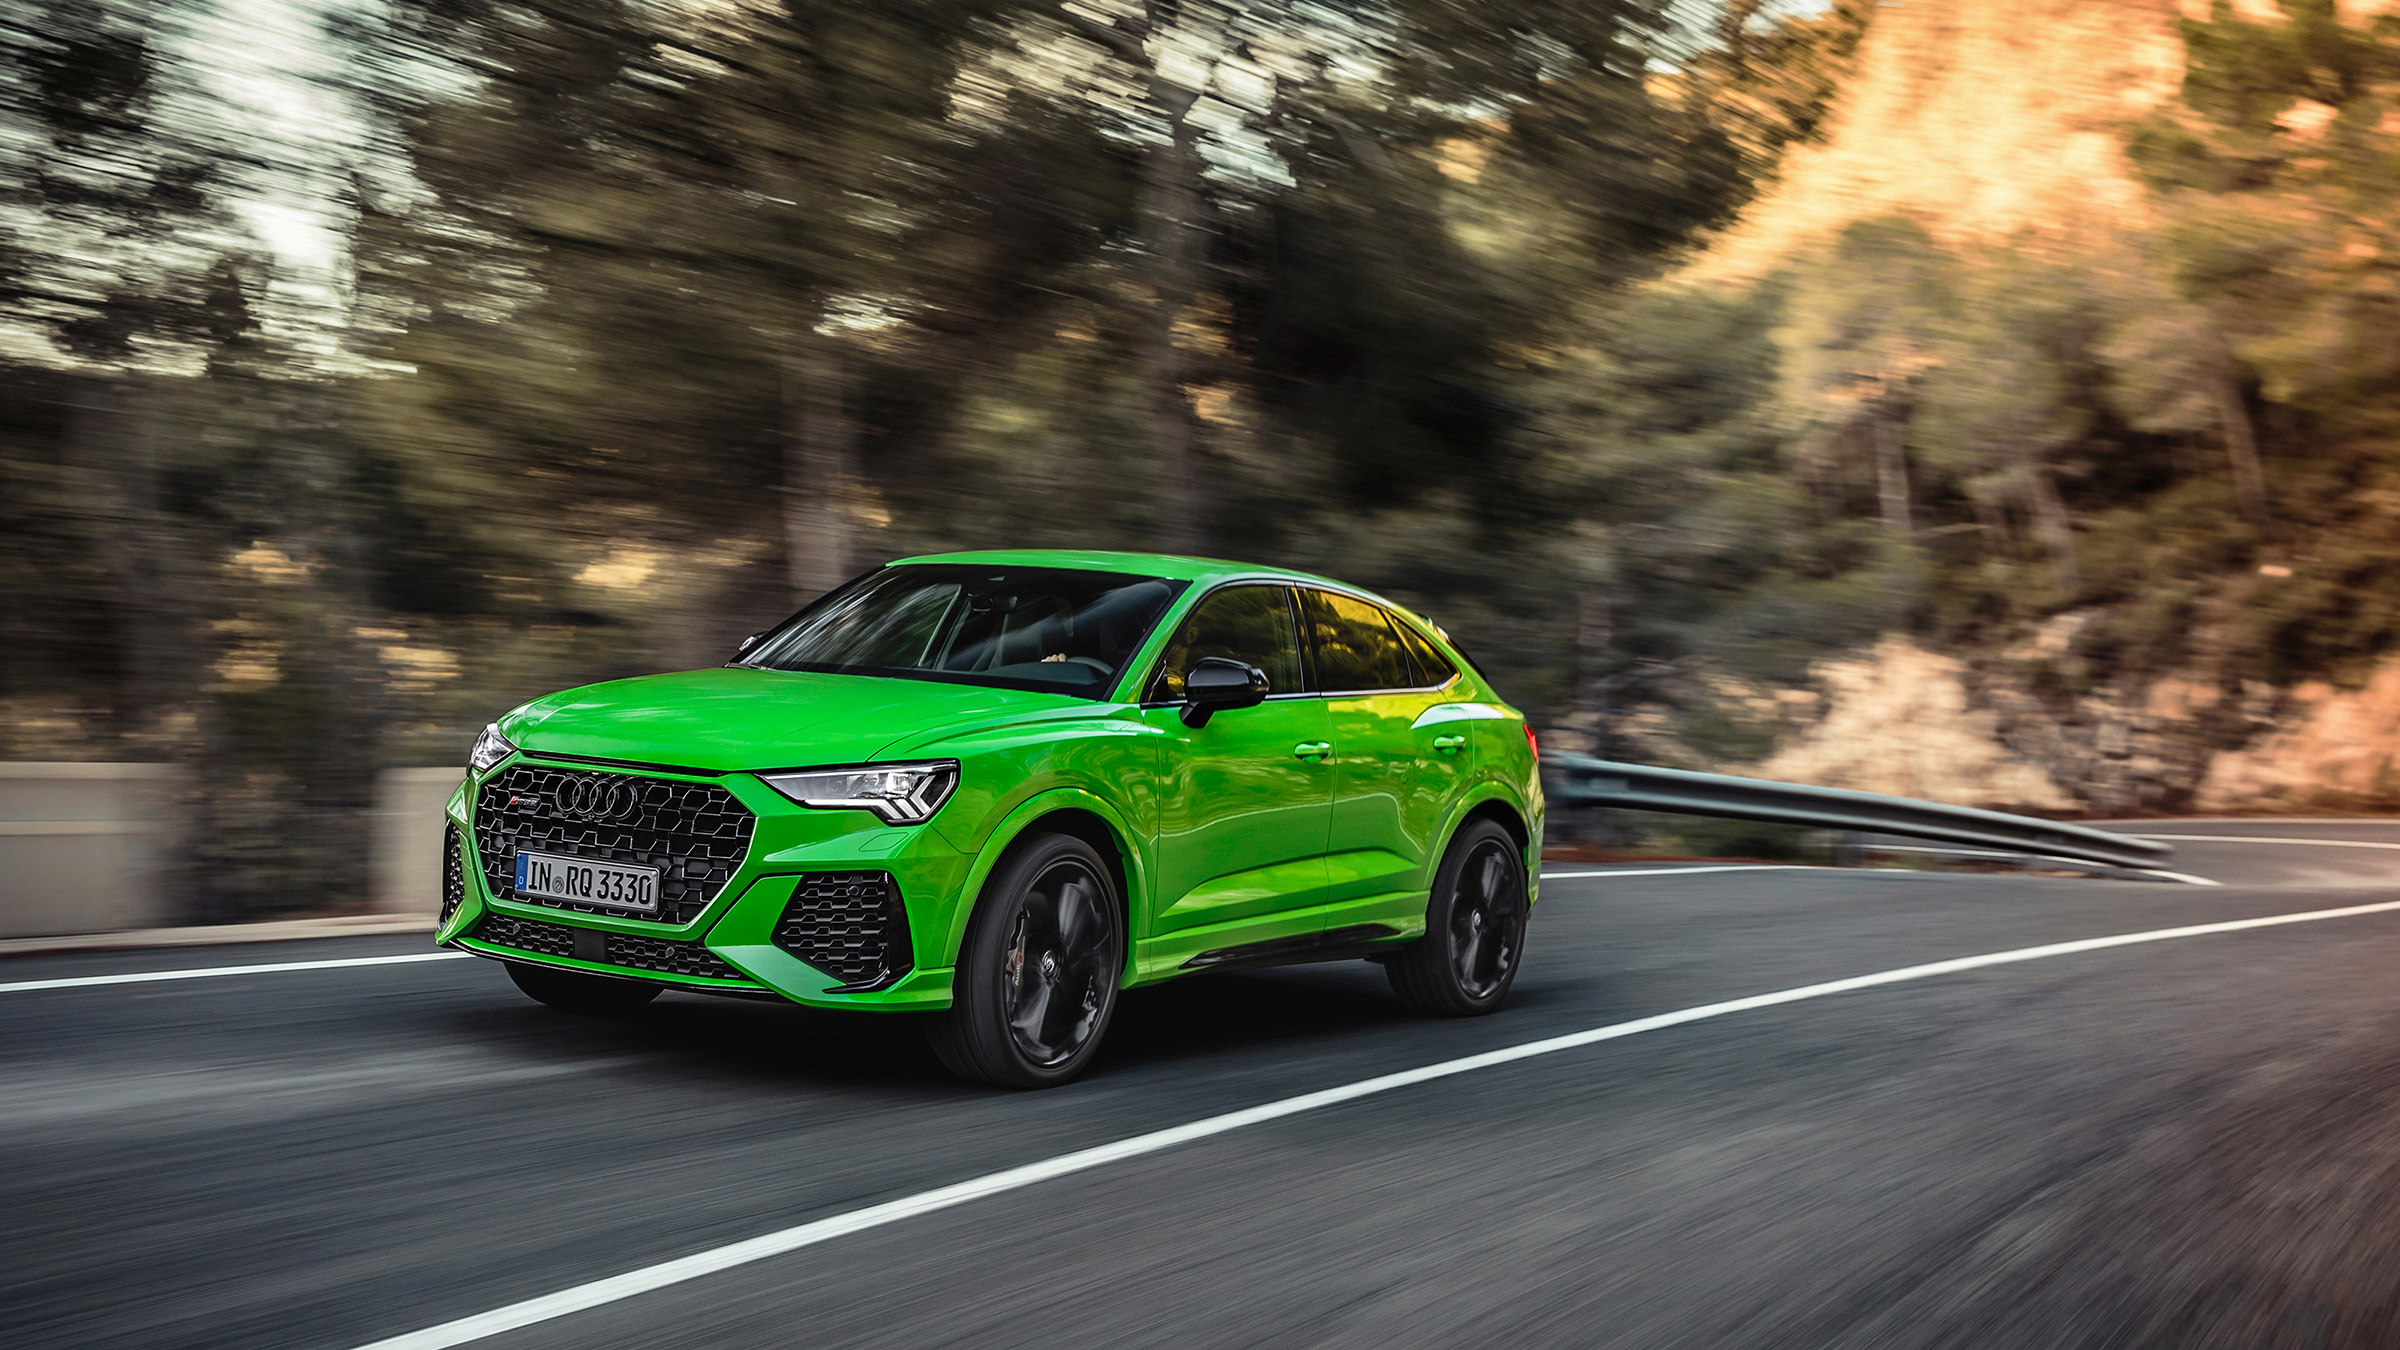 New Audi Rs Q3 And Rs Q3 Sportback Arrive With 394bhp Evo